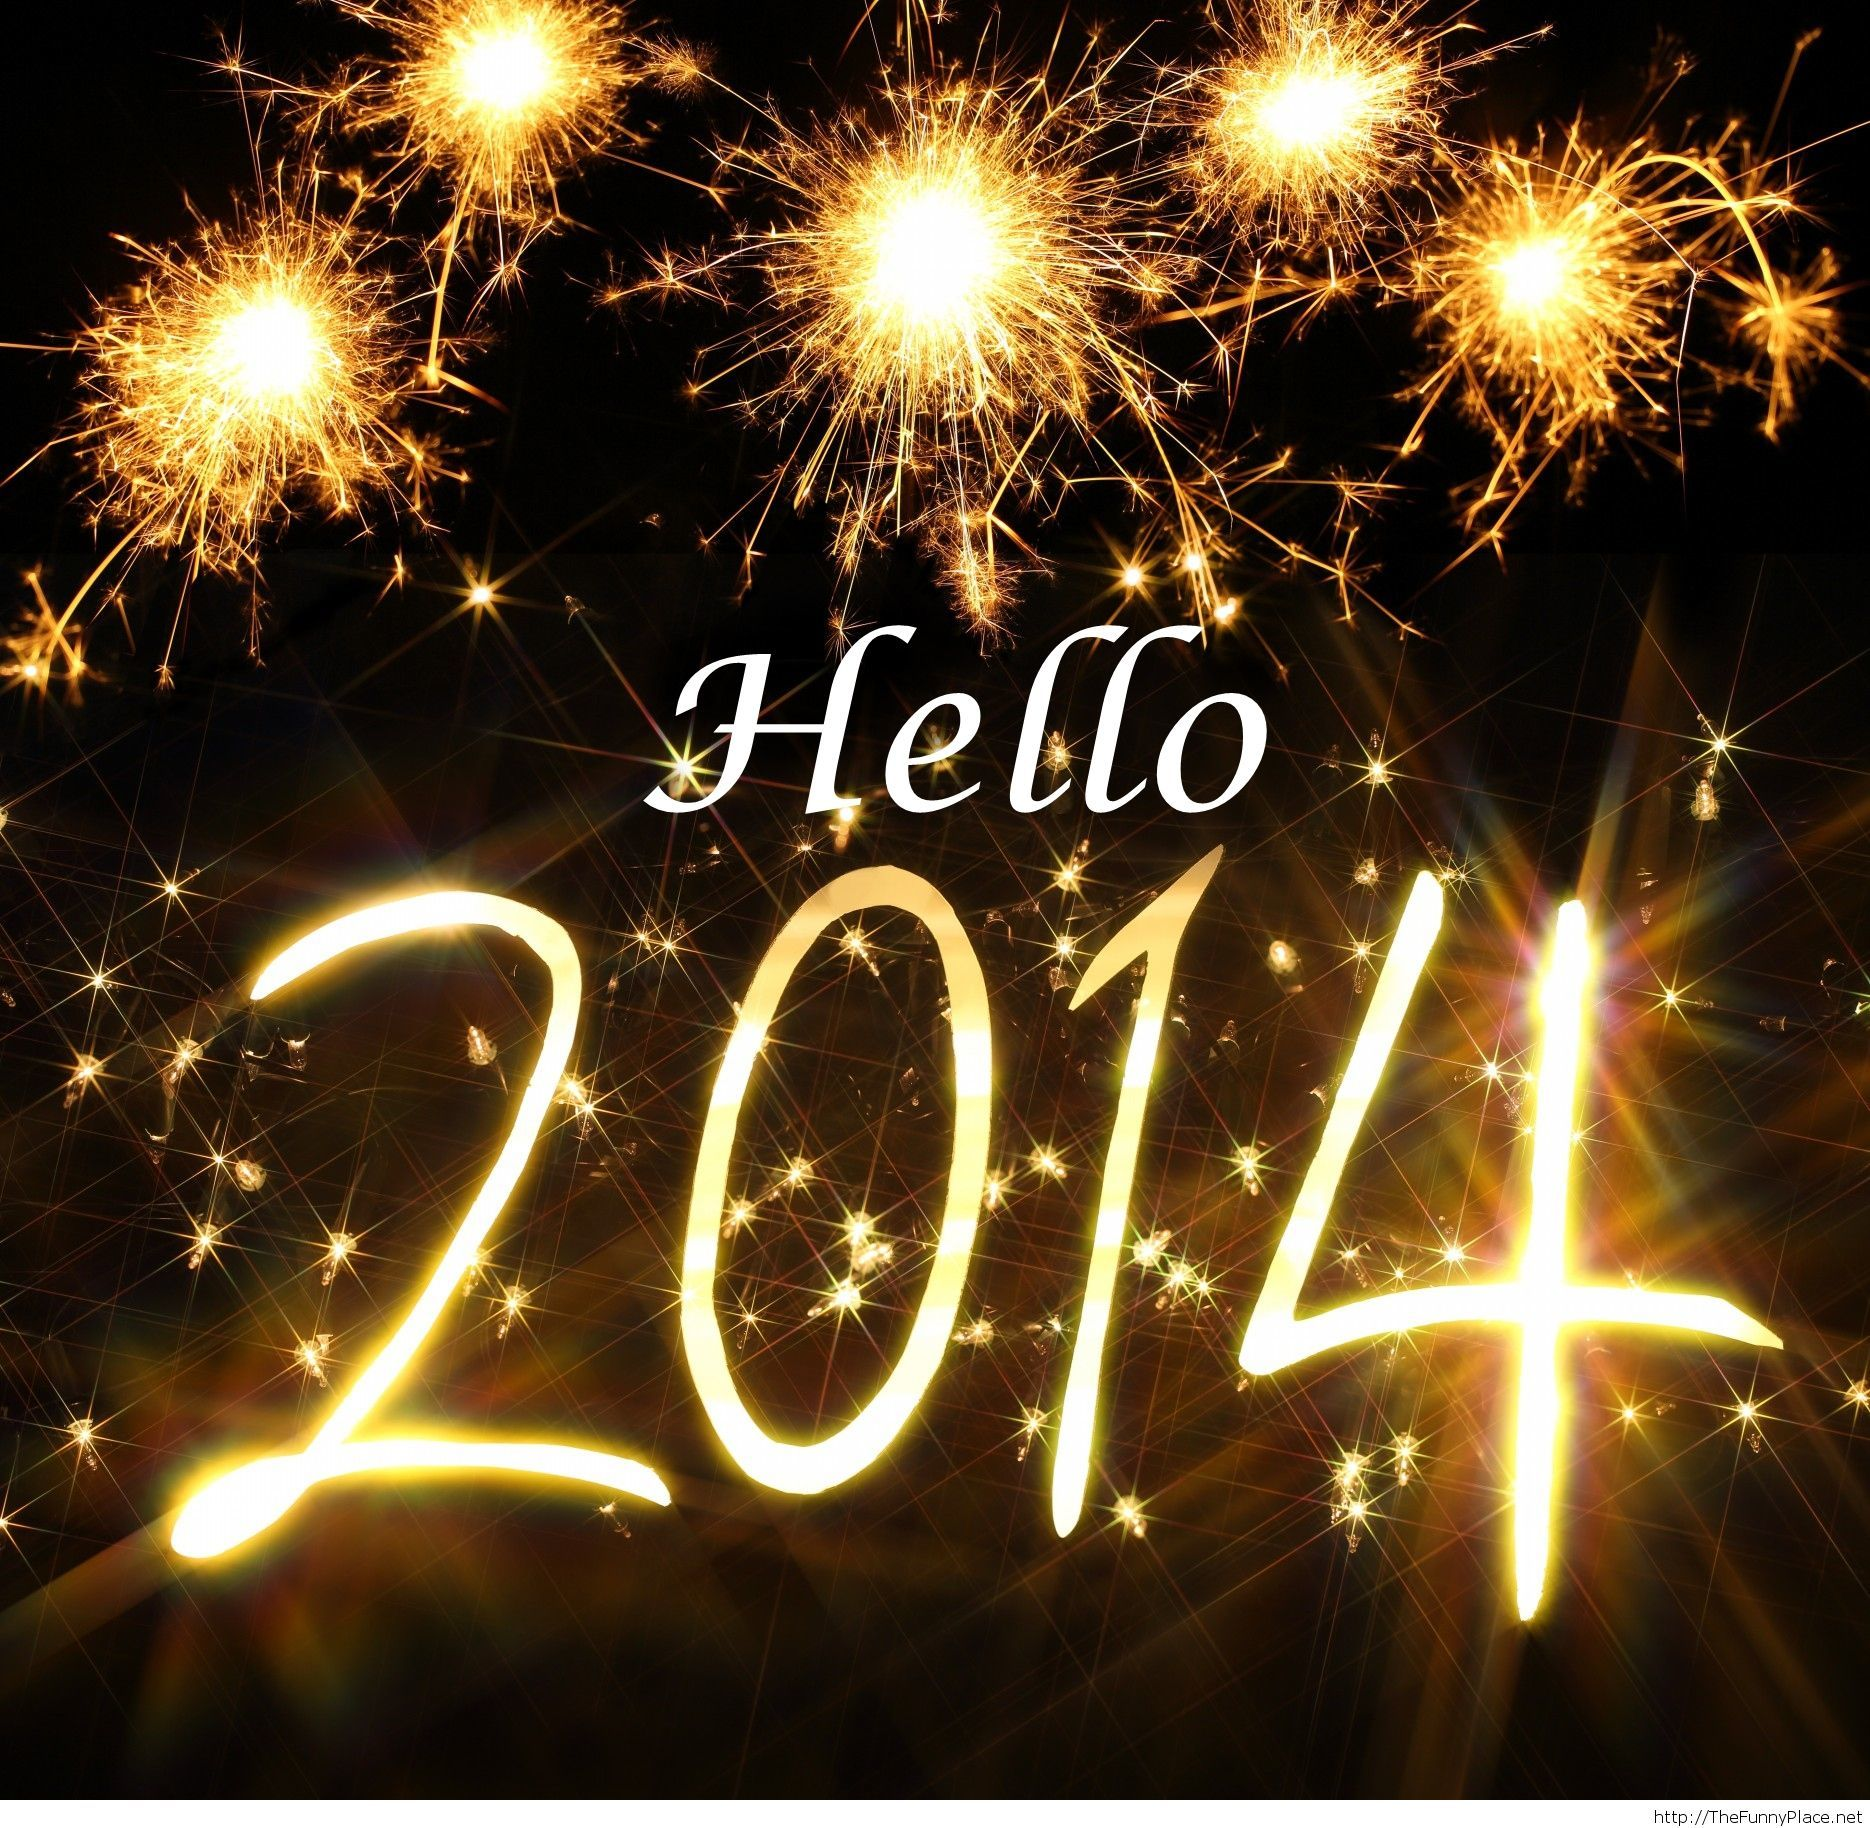 2014 hello design wallpaper